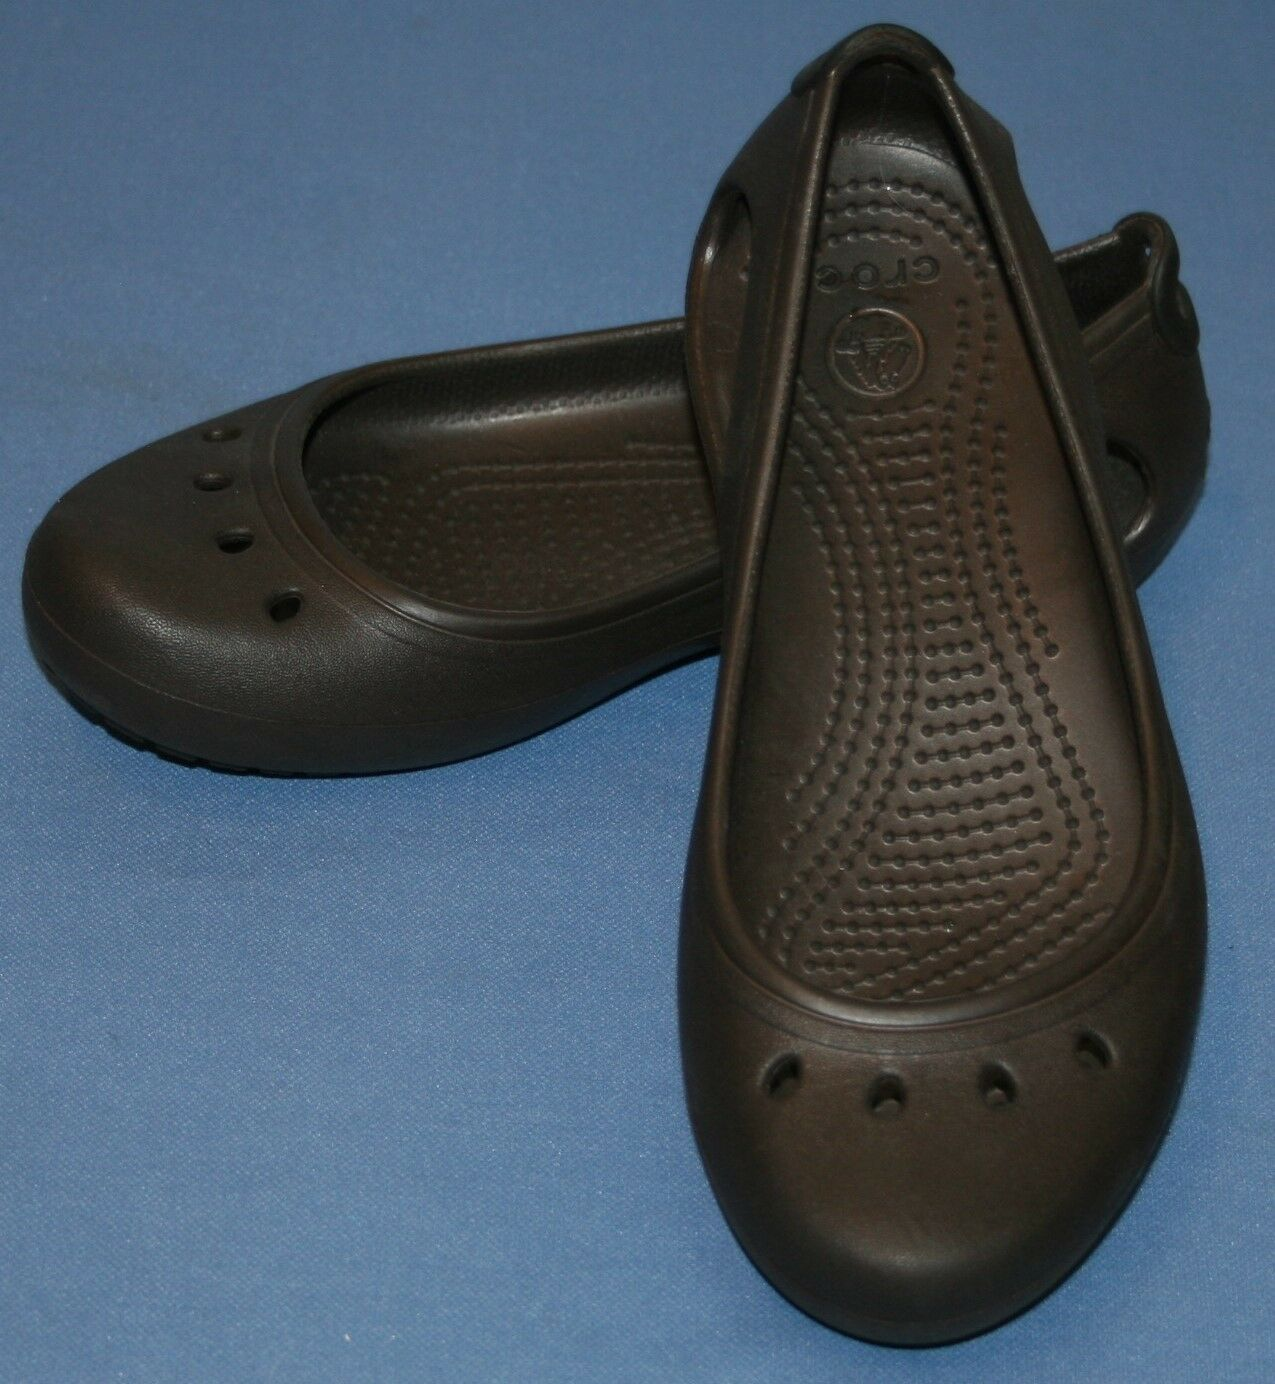 Crocs Brown Mary Jane Style Sz 5 Sandals Womens Slides Shoes Water Sandals 5 5eb849